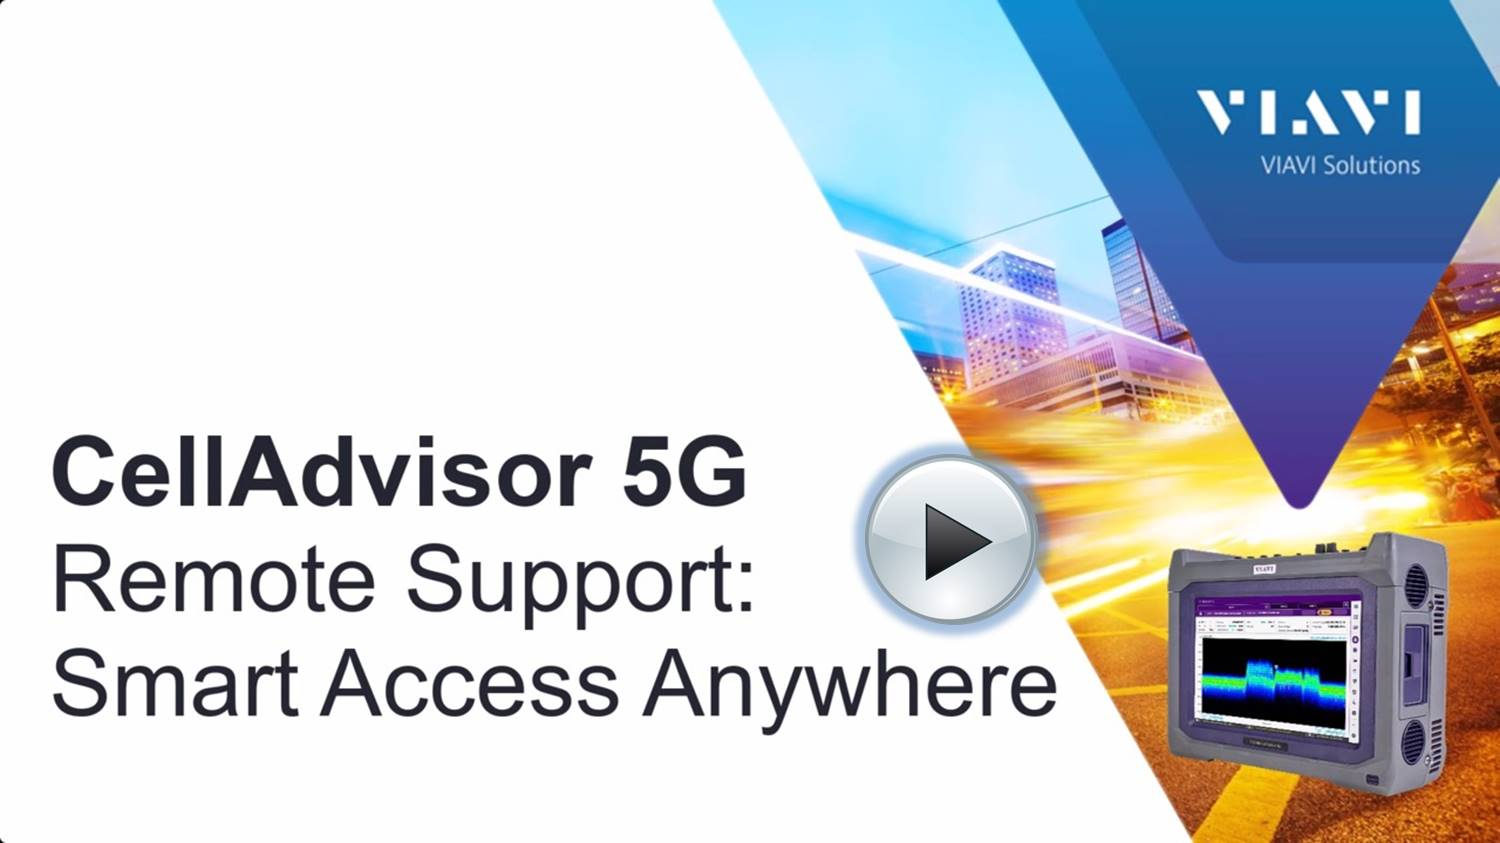 VIAVI CellAdvisor 5G How To Videos - Remote Support_Smart Access Anywhere - Play